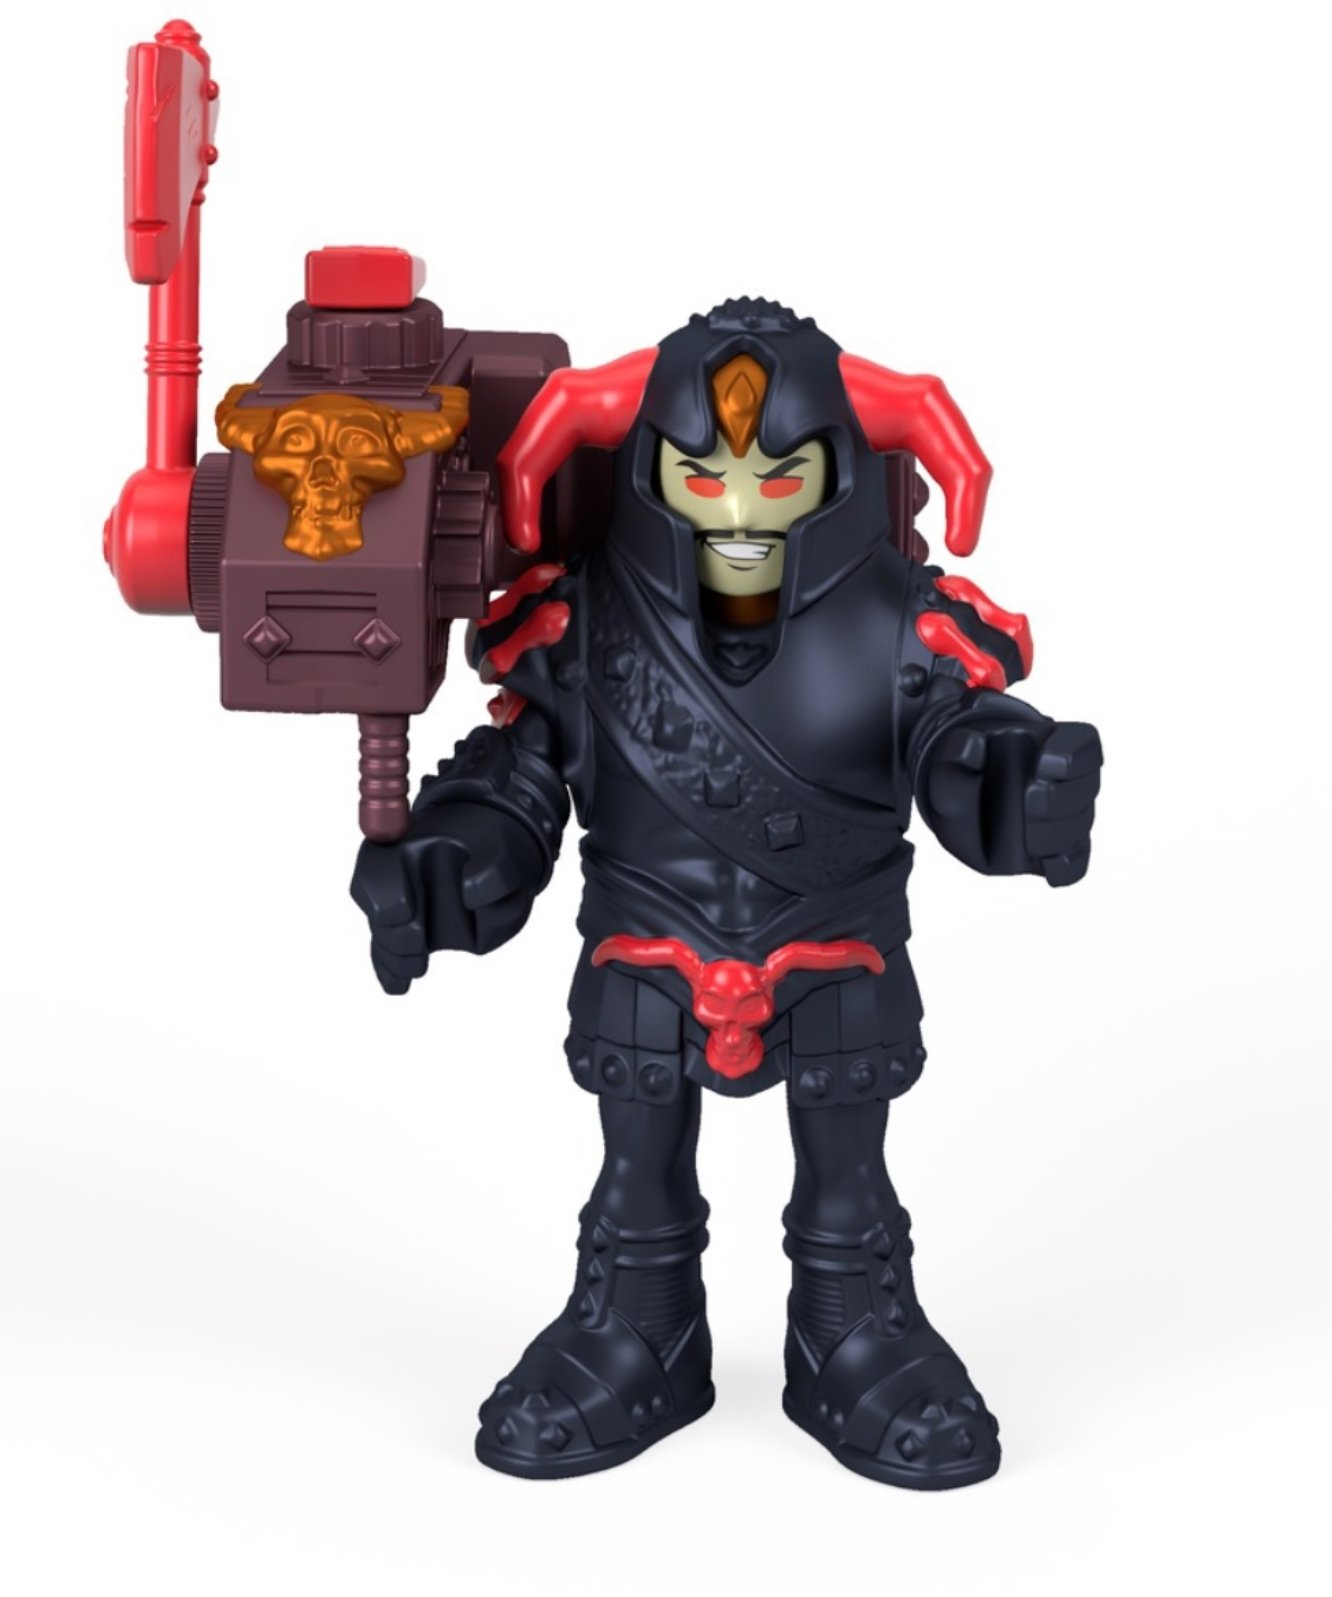 Fisher-Price Imaginext DC Super Friends, Steppenwolf